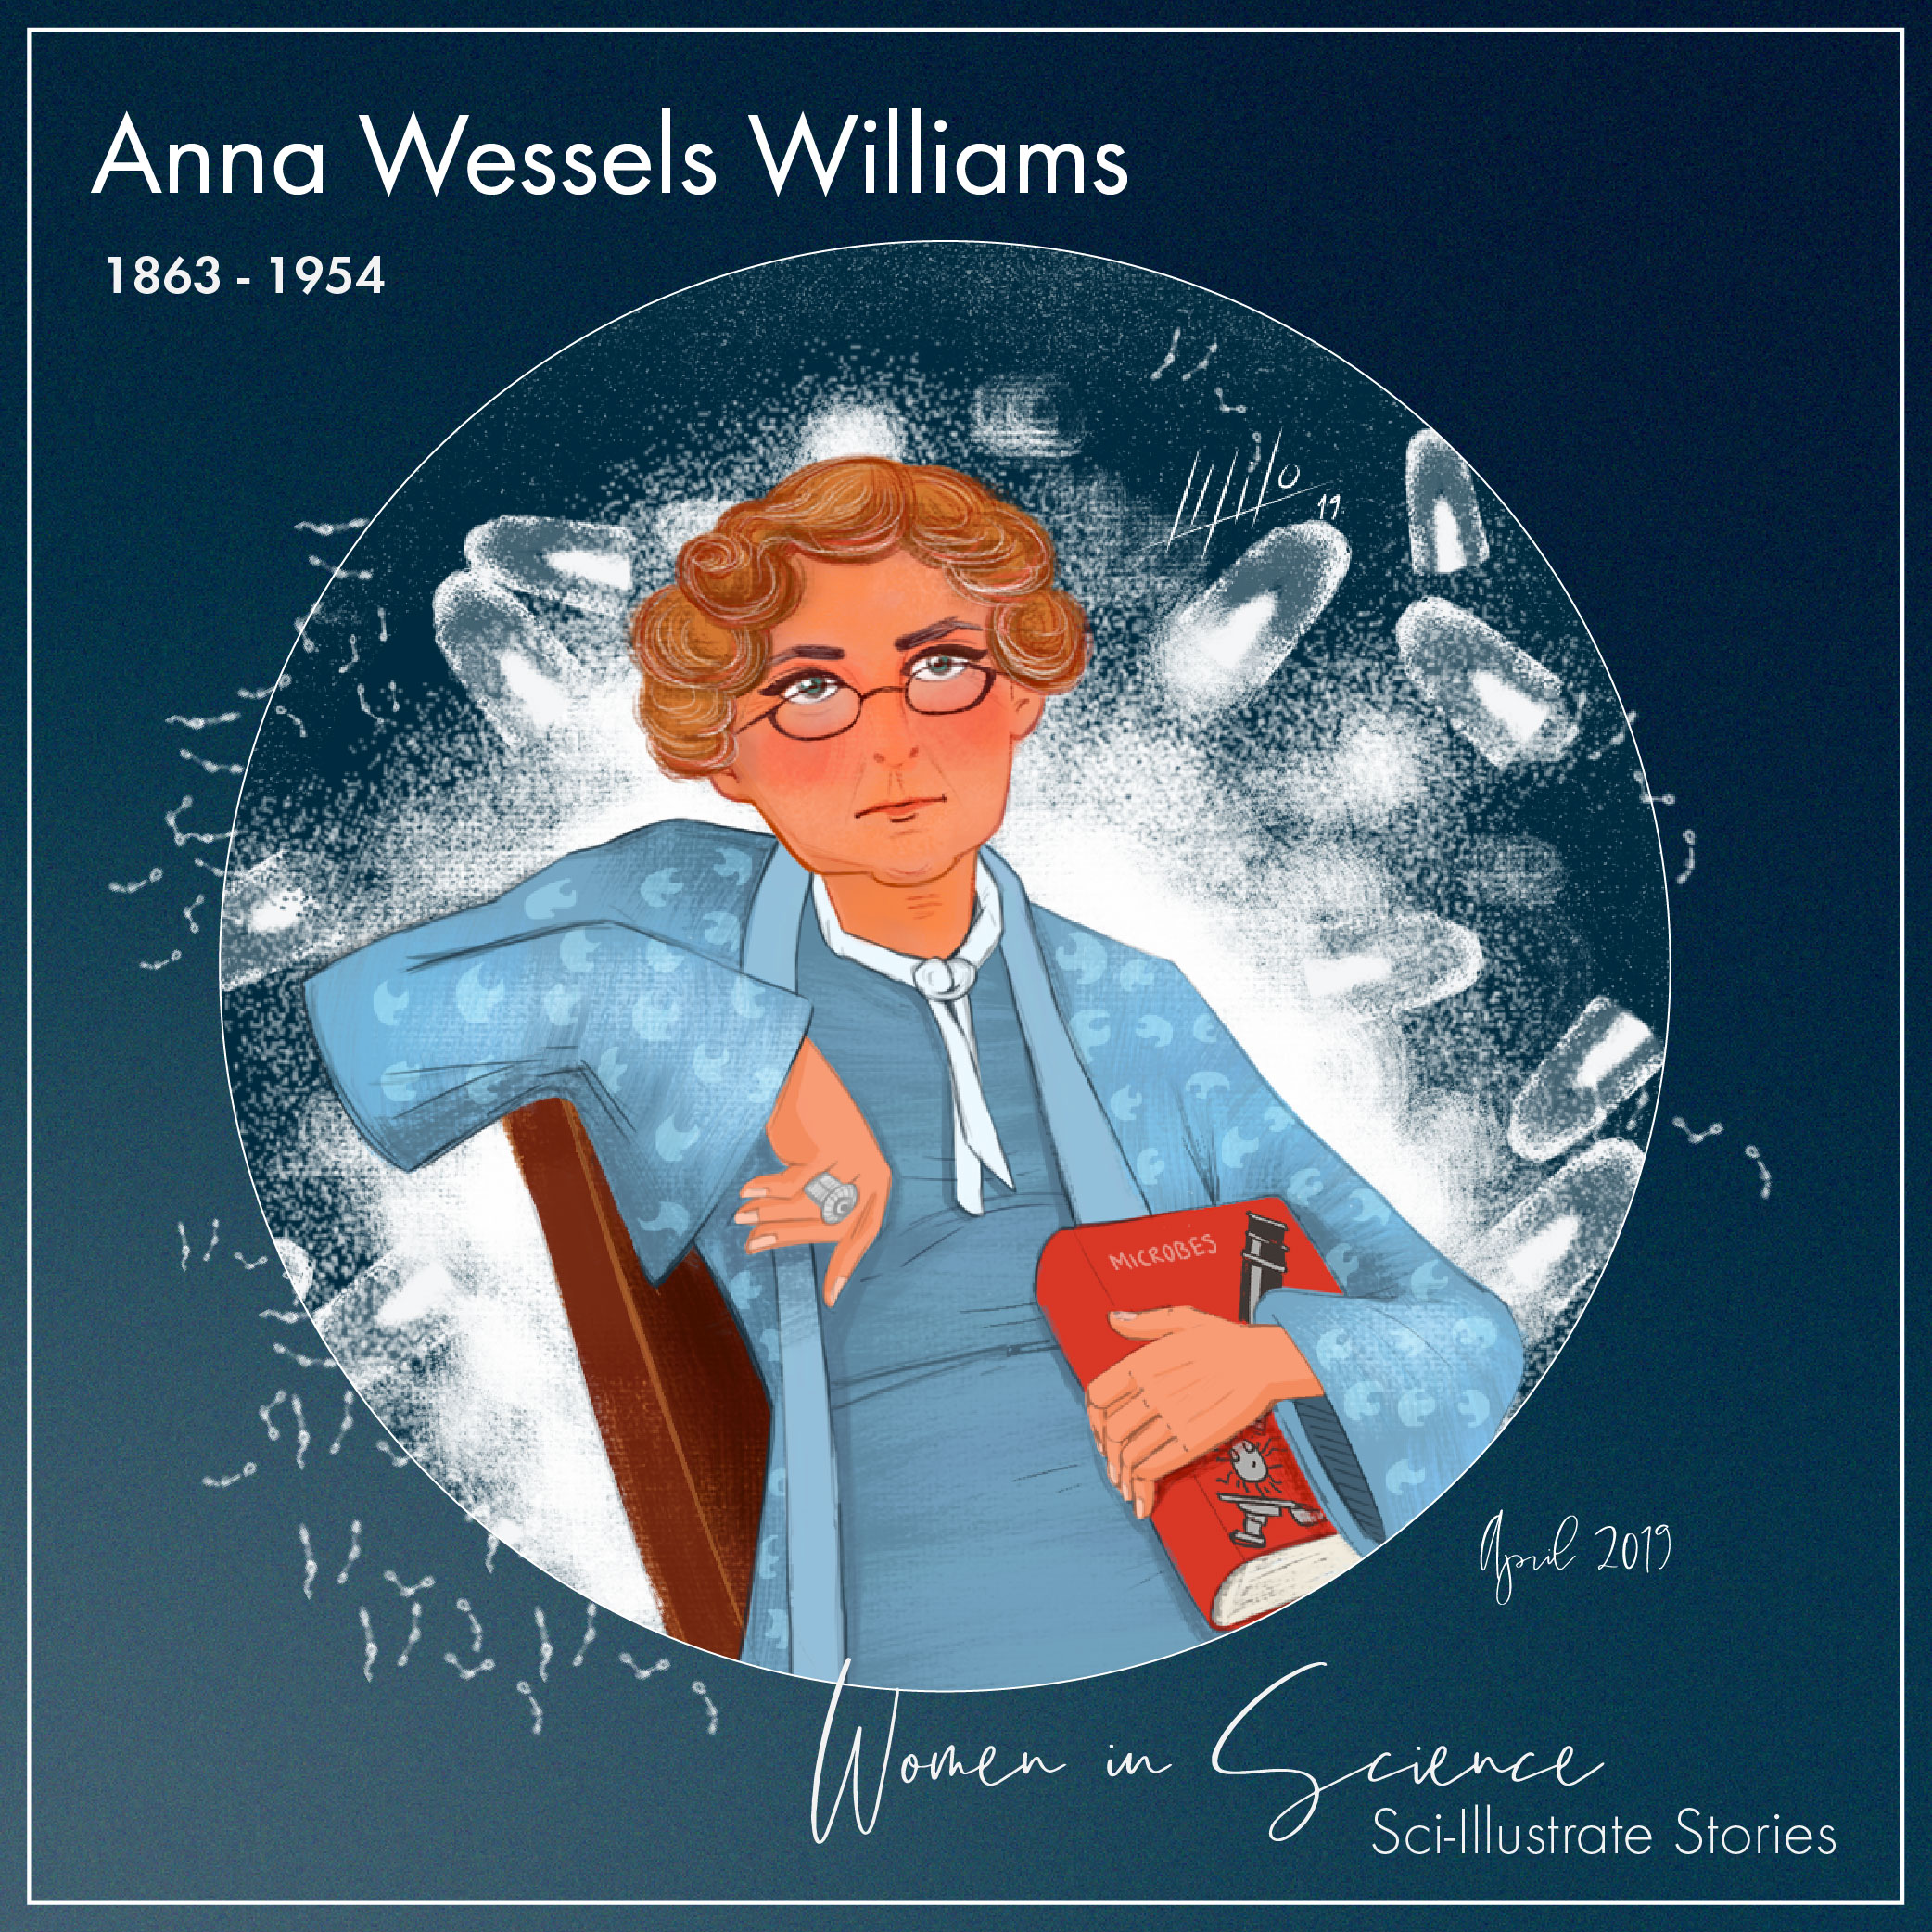 Anna Wessels Williams_Wis SS-03-04-04.jpg